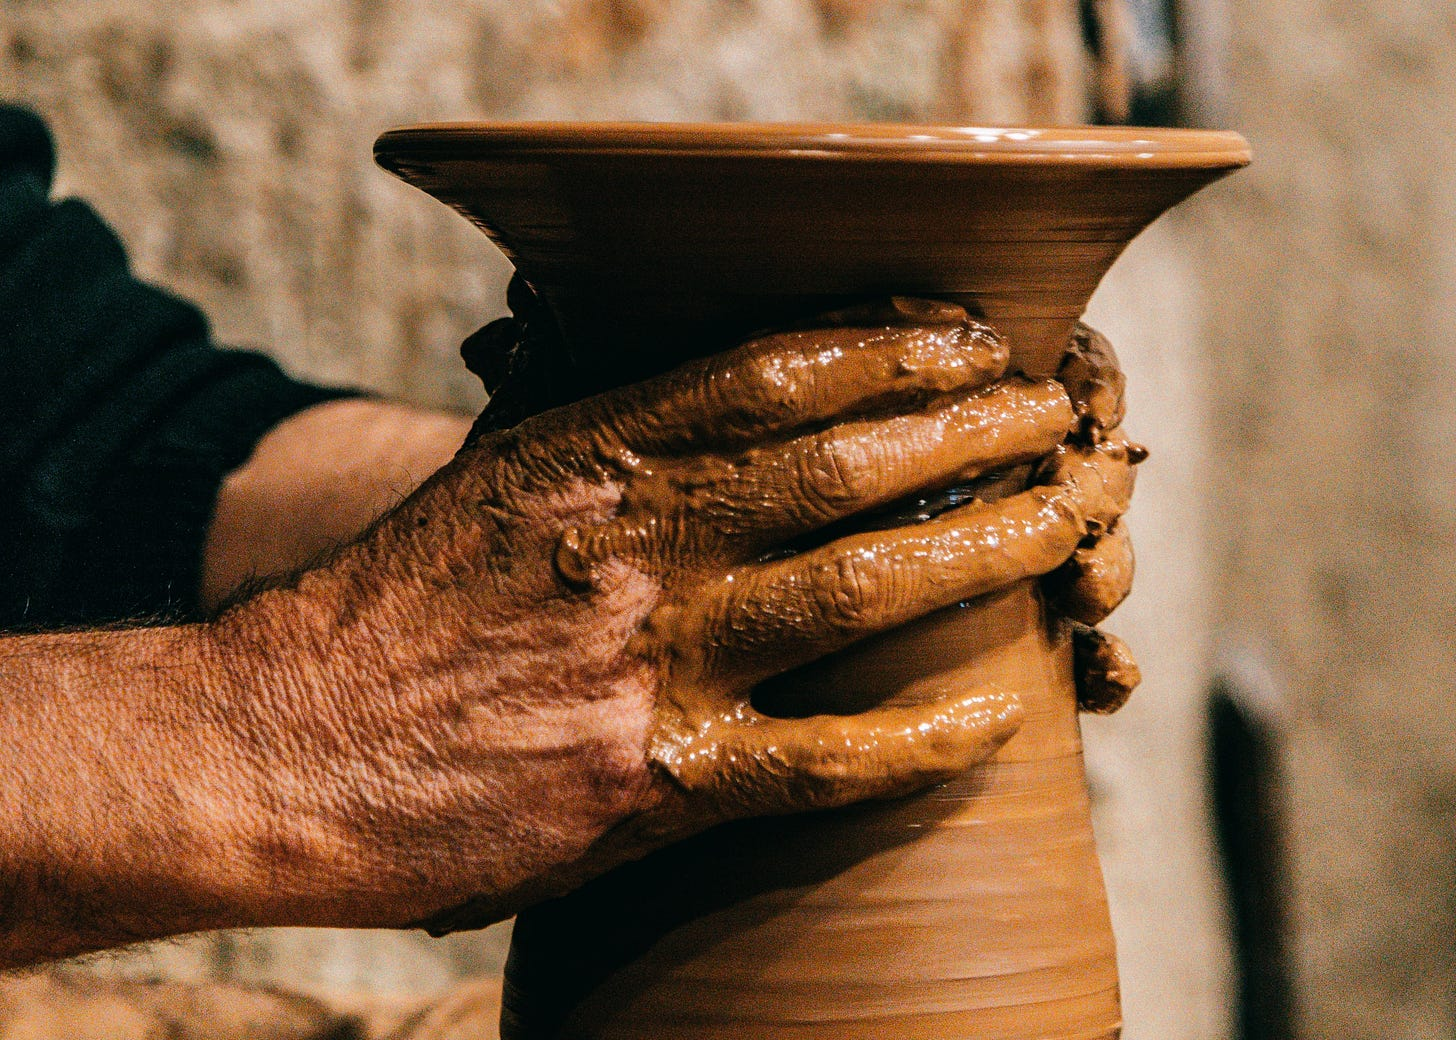 Man with hands in clay making vase on pottery wheel